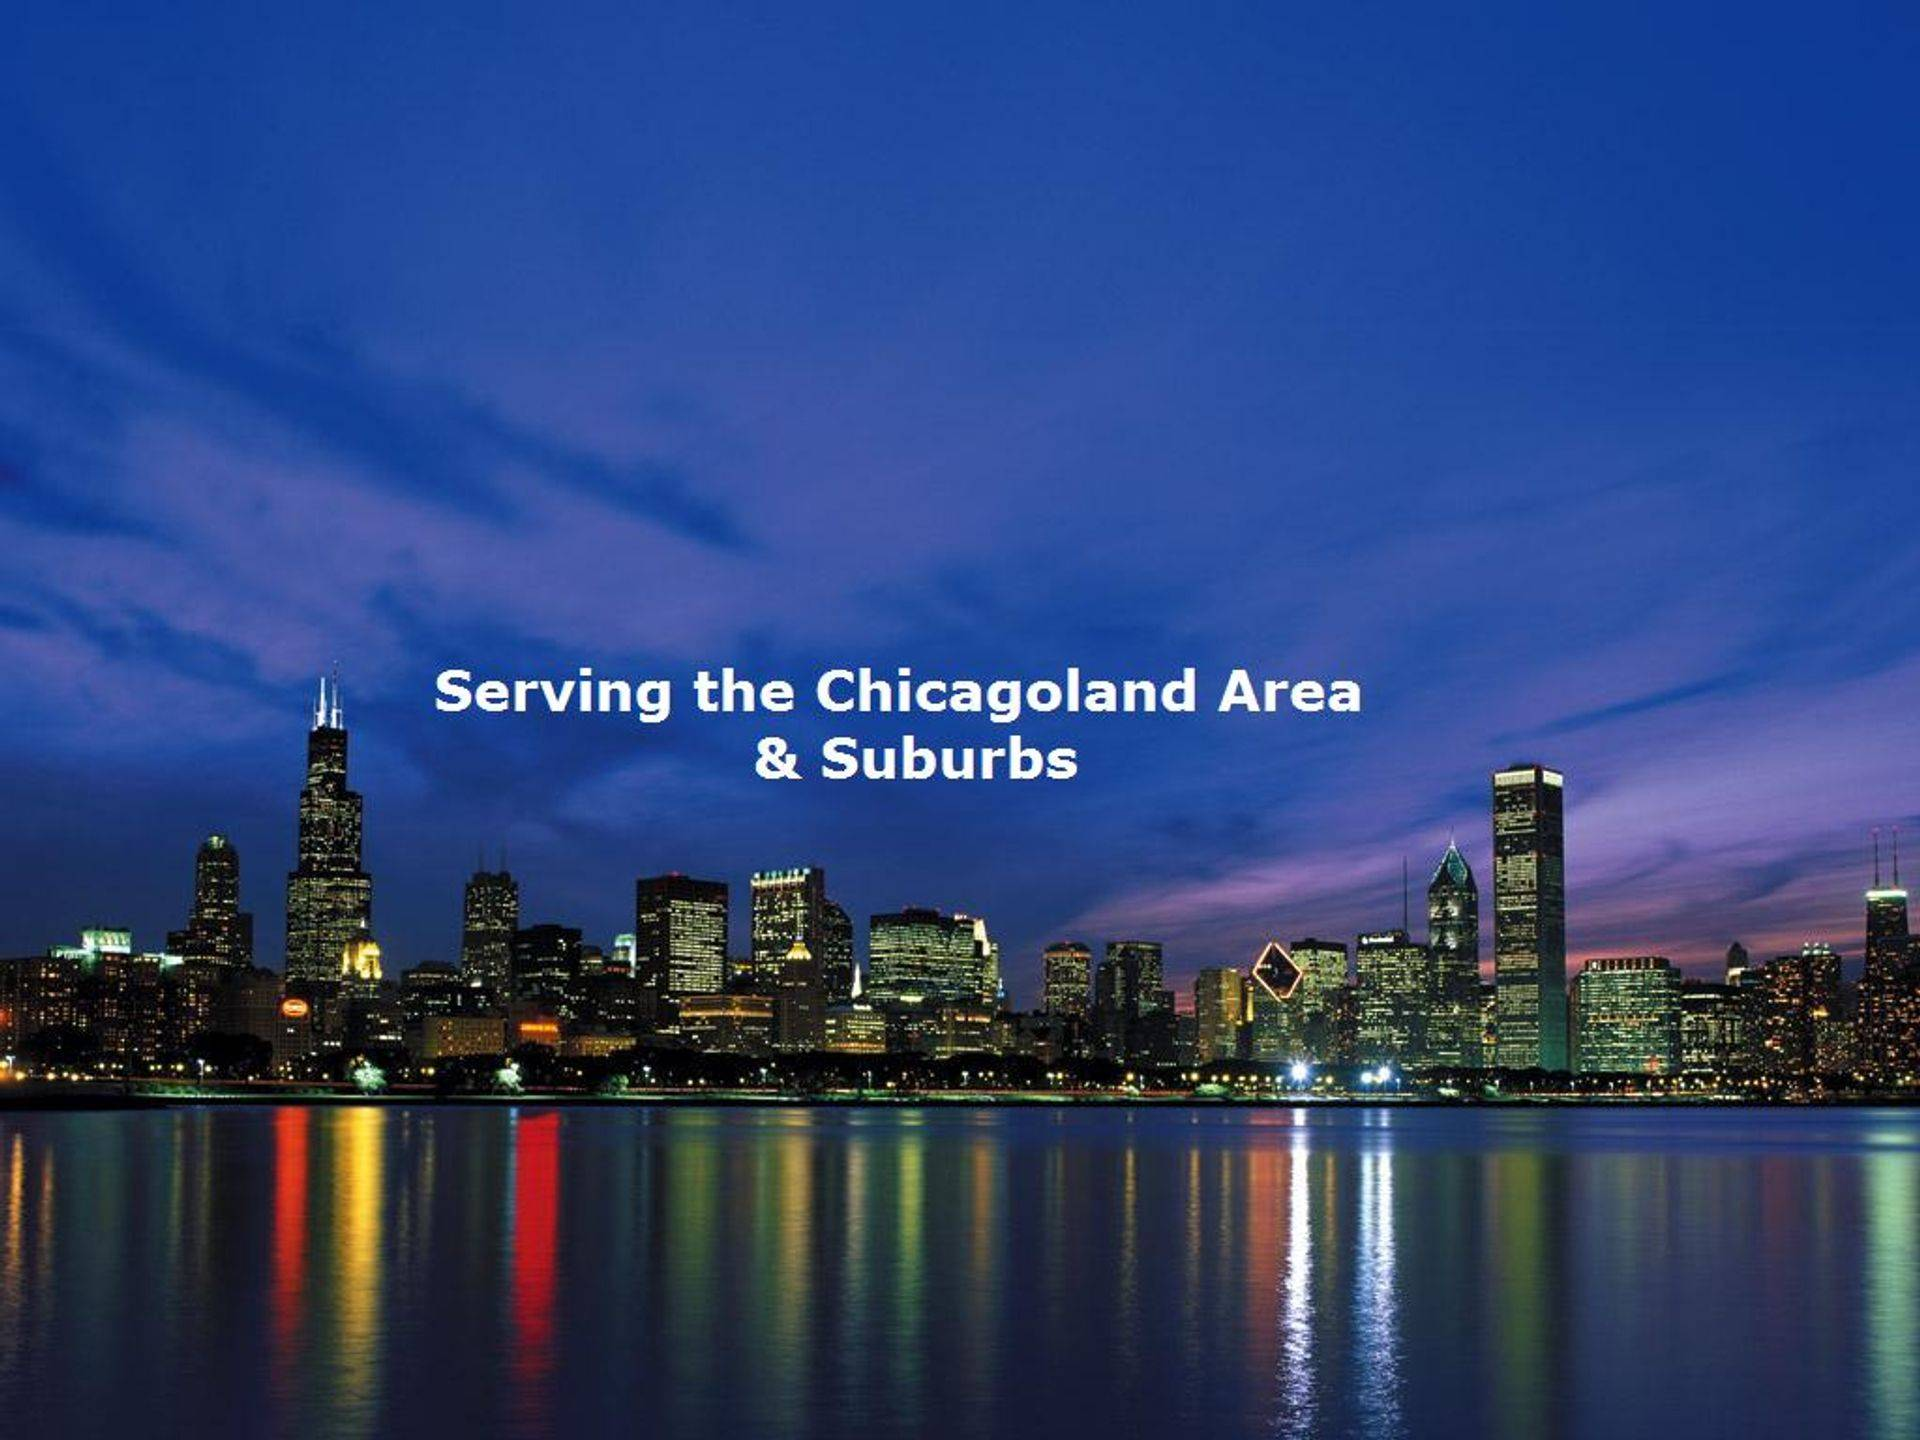 Servicing the Chicagoland Area